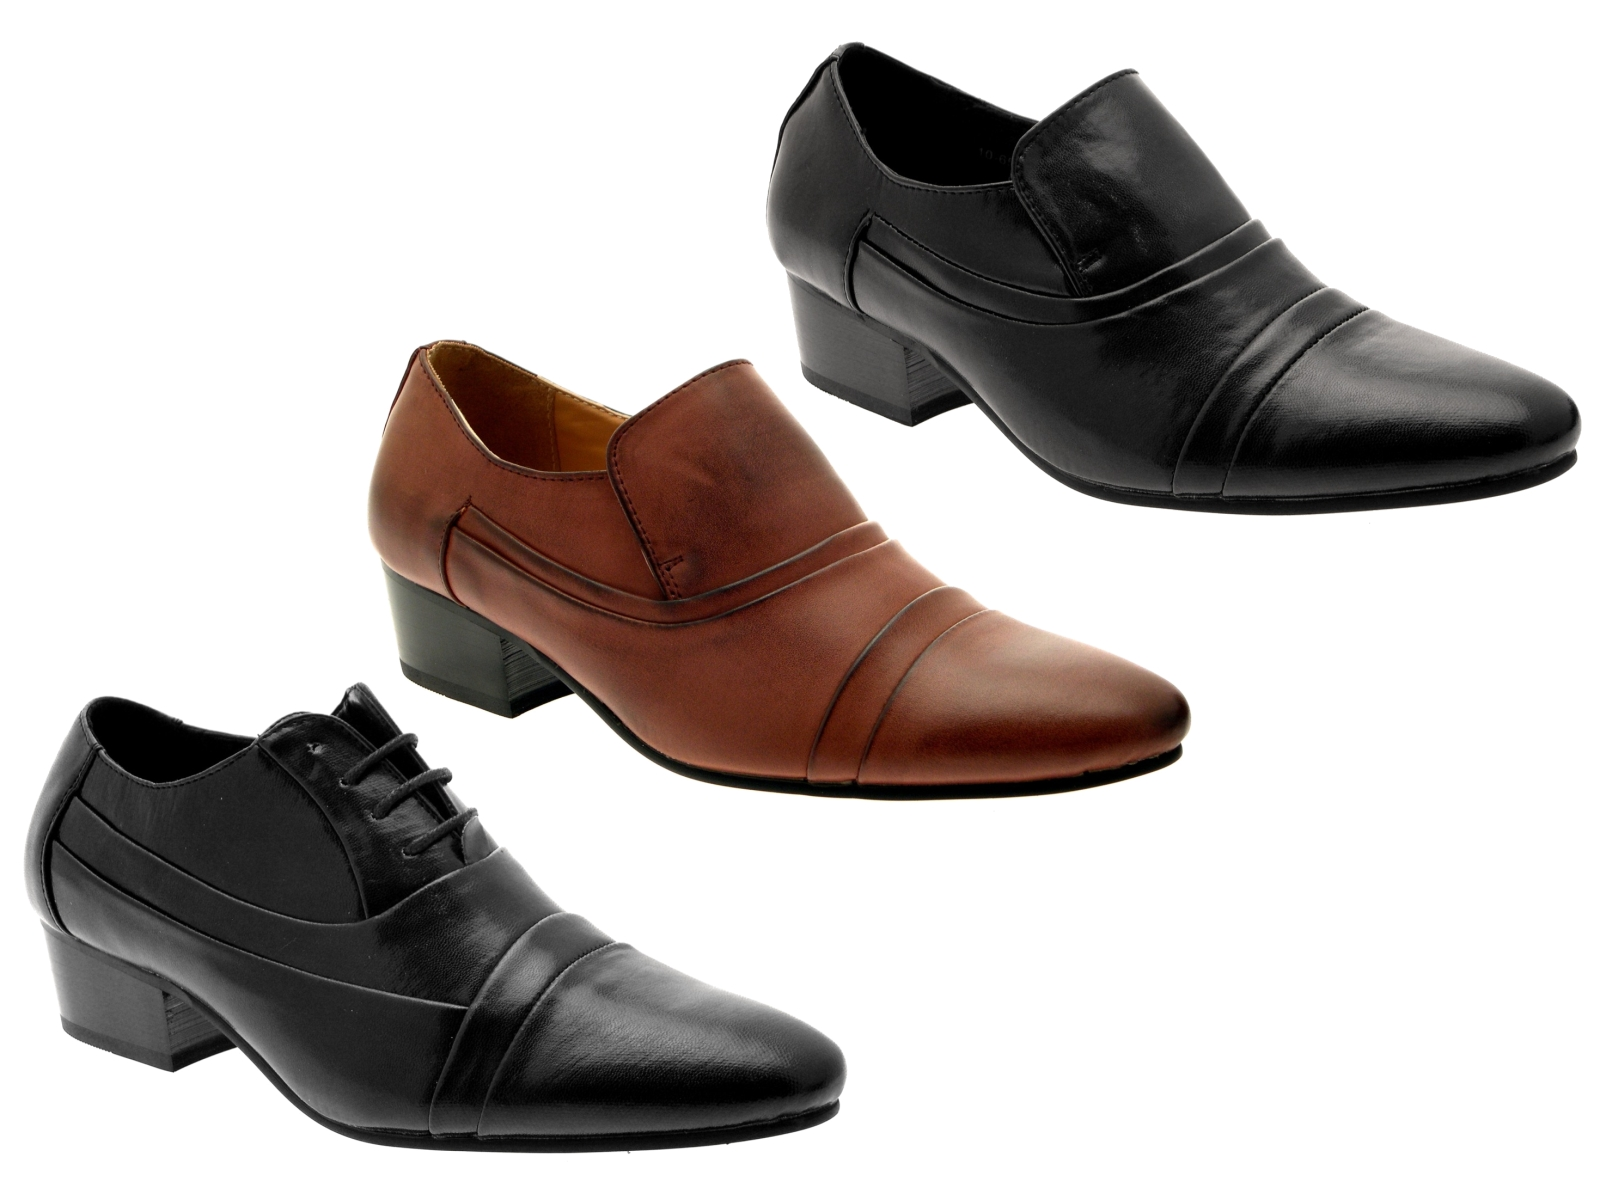 Mens Smart Cuban Heels Formal Wedding Office Shoes